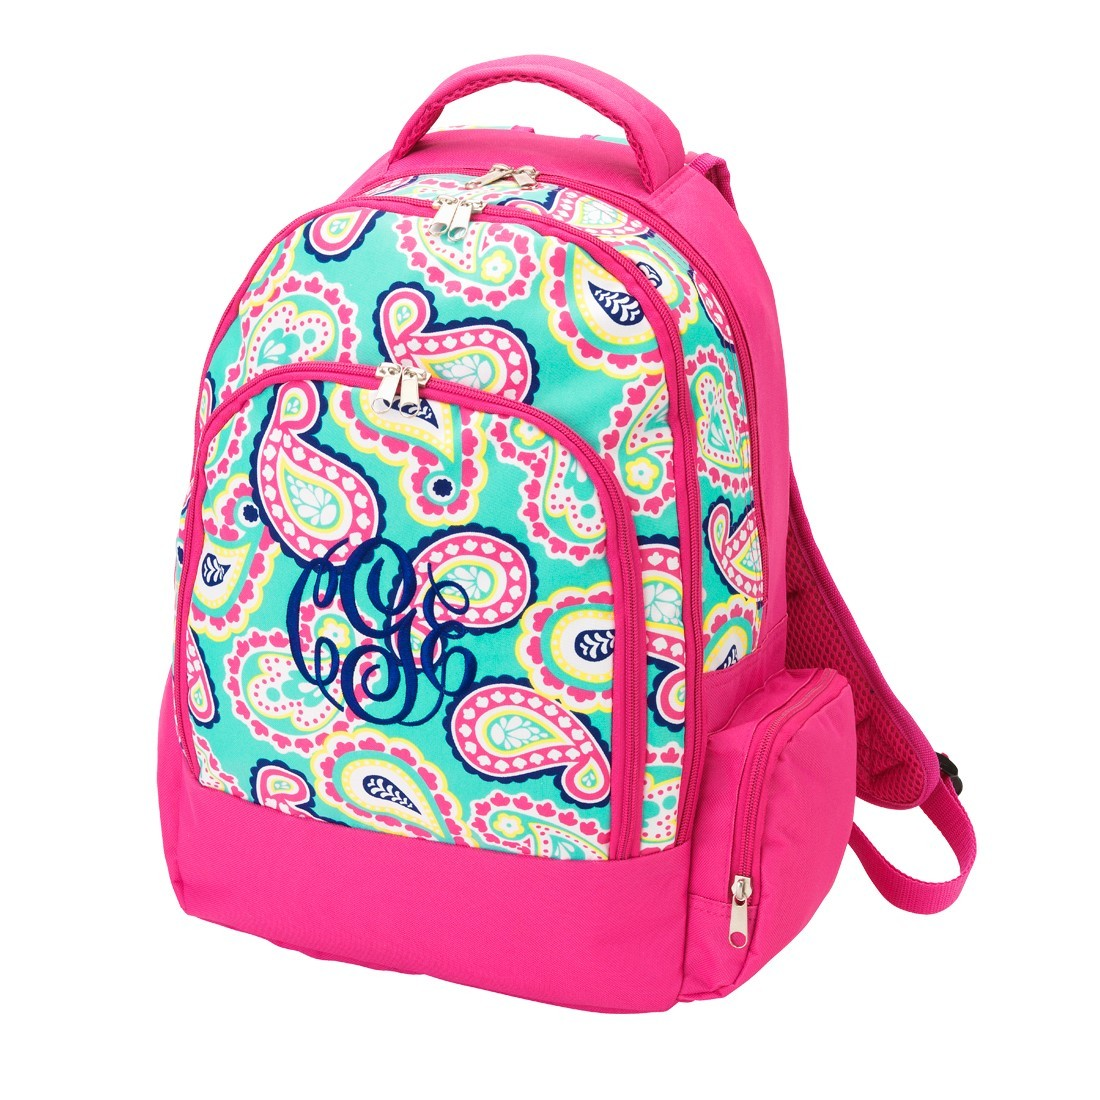 Girls Monogrammed Backpacks 71GuSxH7